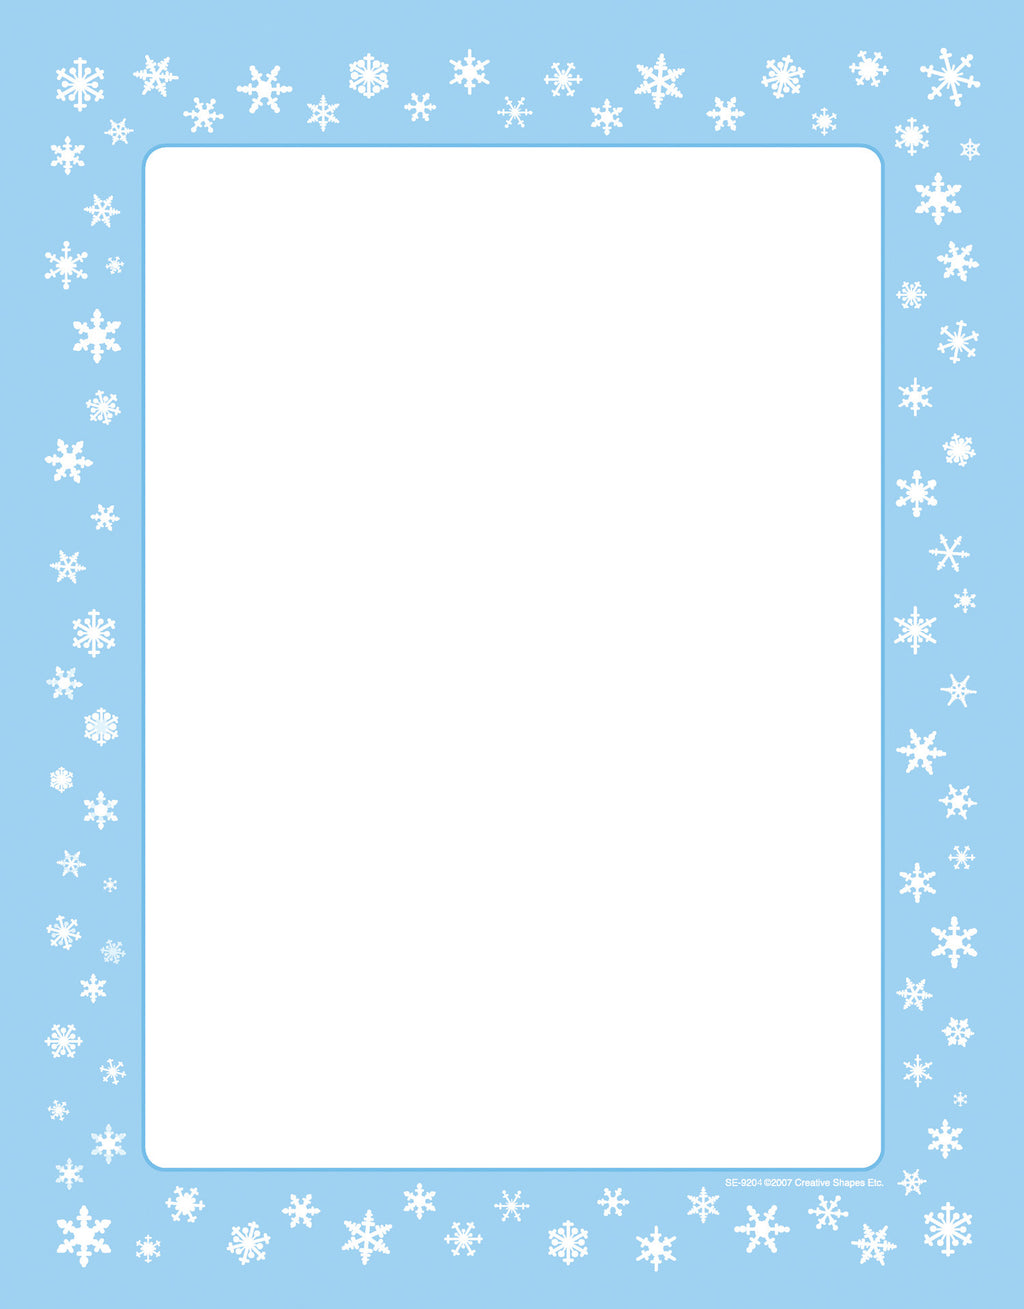 Designer Paper - Snowflakes (50 Sheet Package) - Creative Shapes Etc.